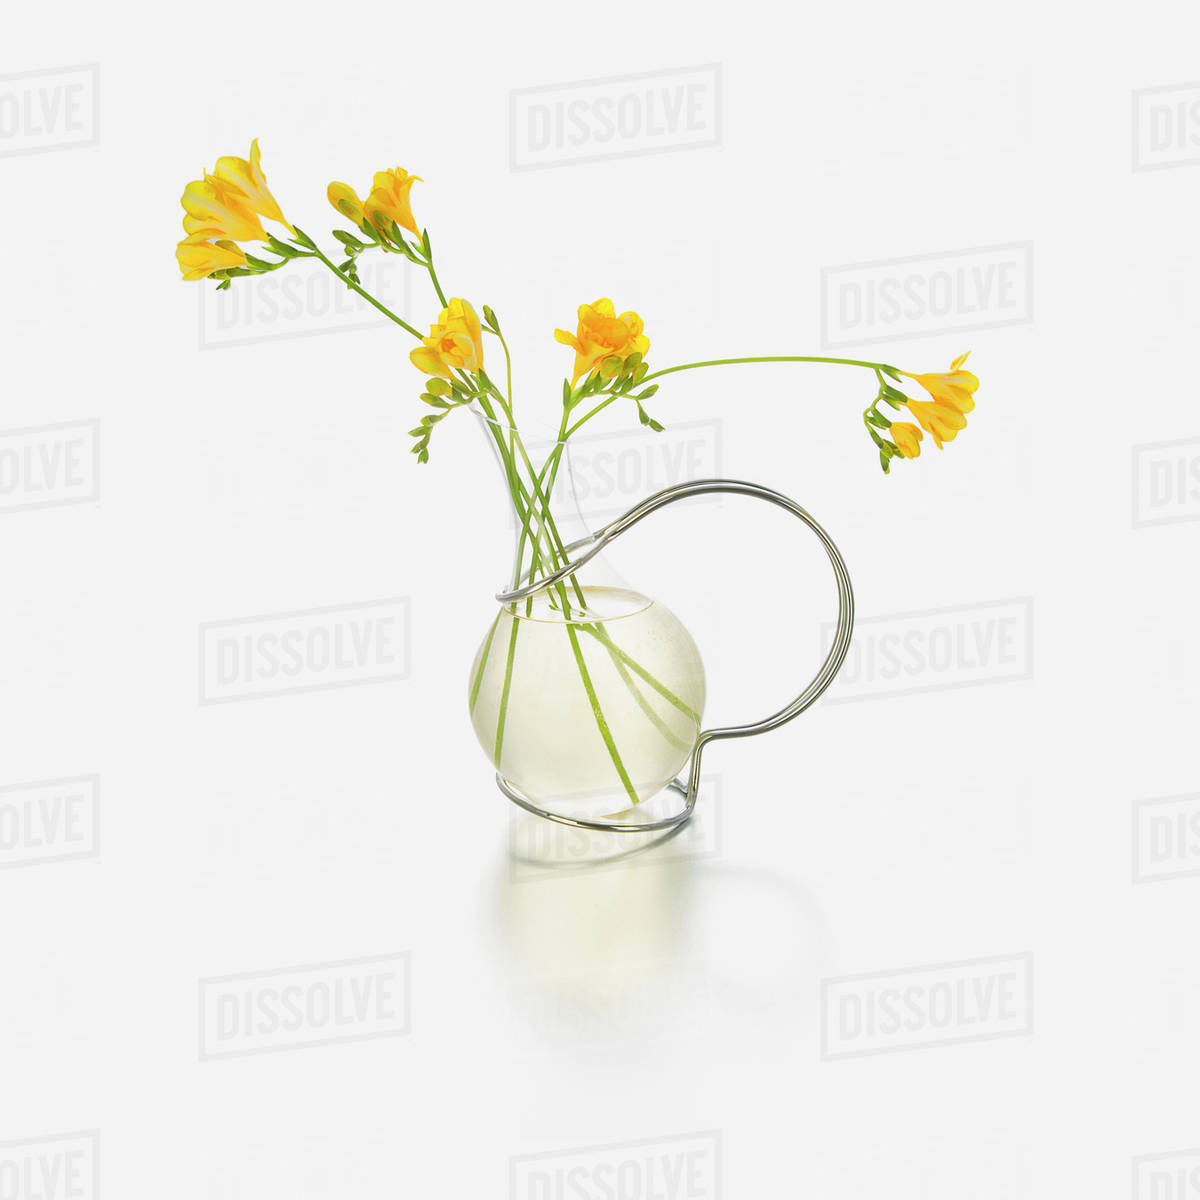 Yellow flowers in a glass vase against a white background  sc 1 st  Dissolve & Yellow flowers in a glass vase against a white background - Stock ...